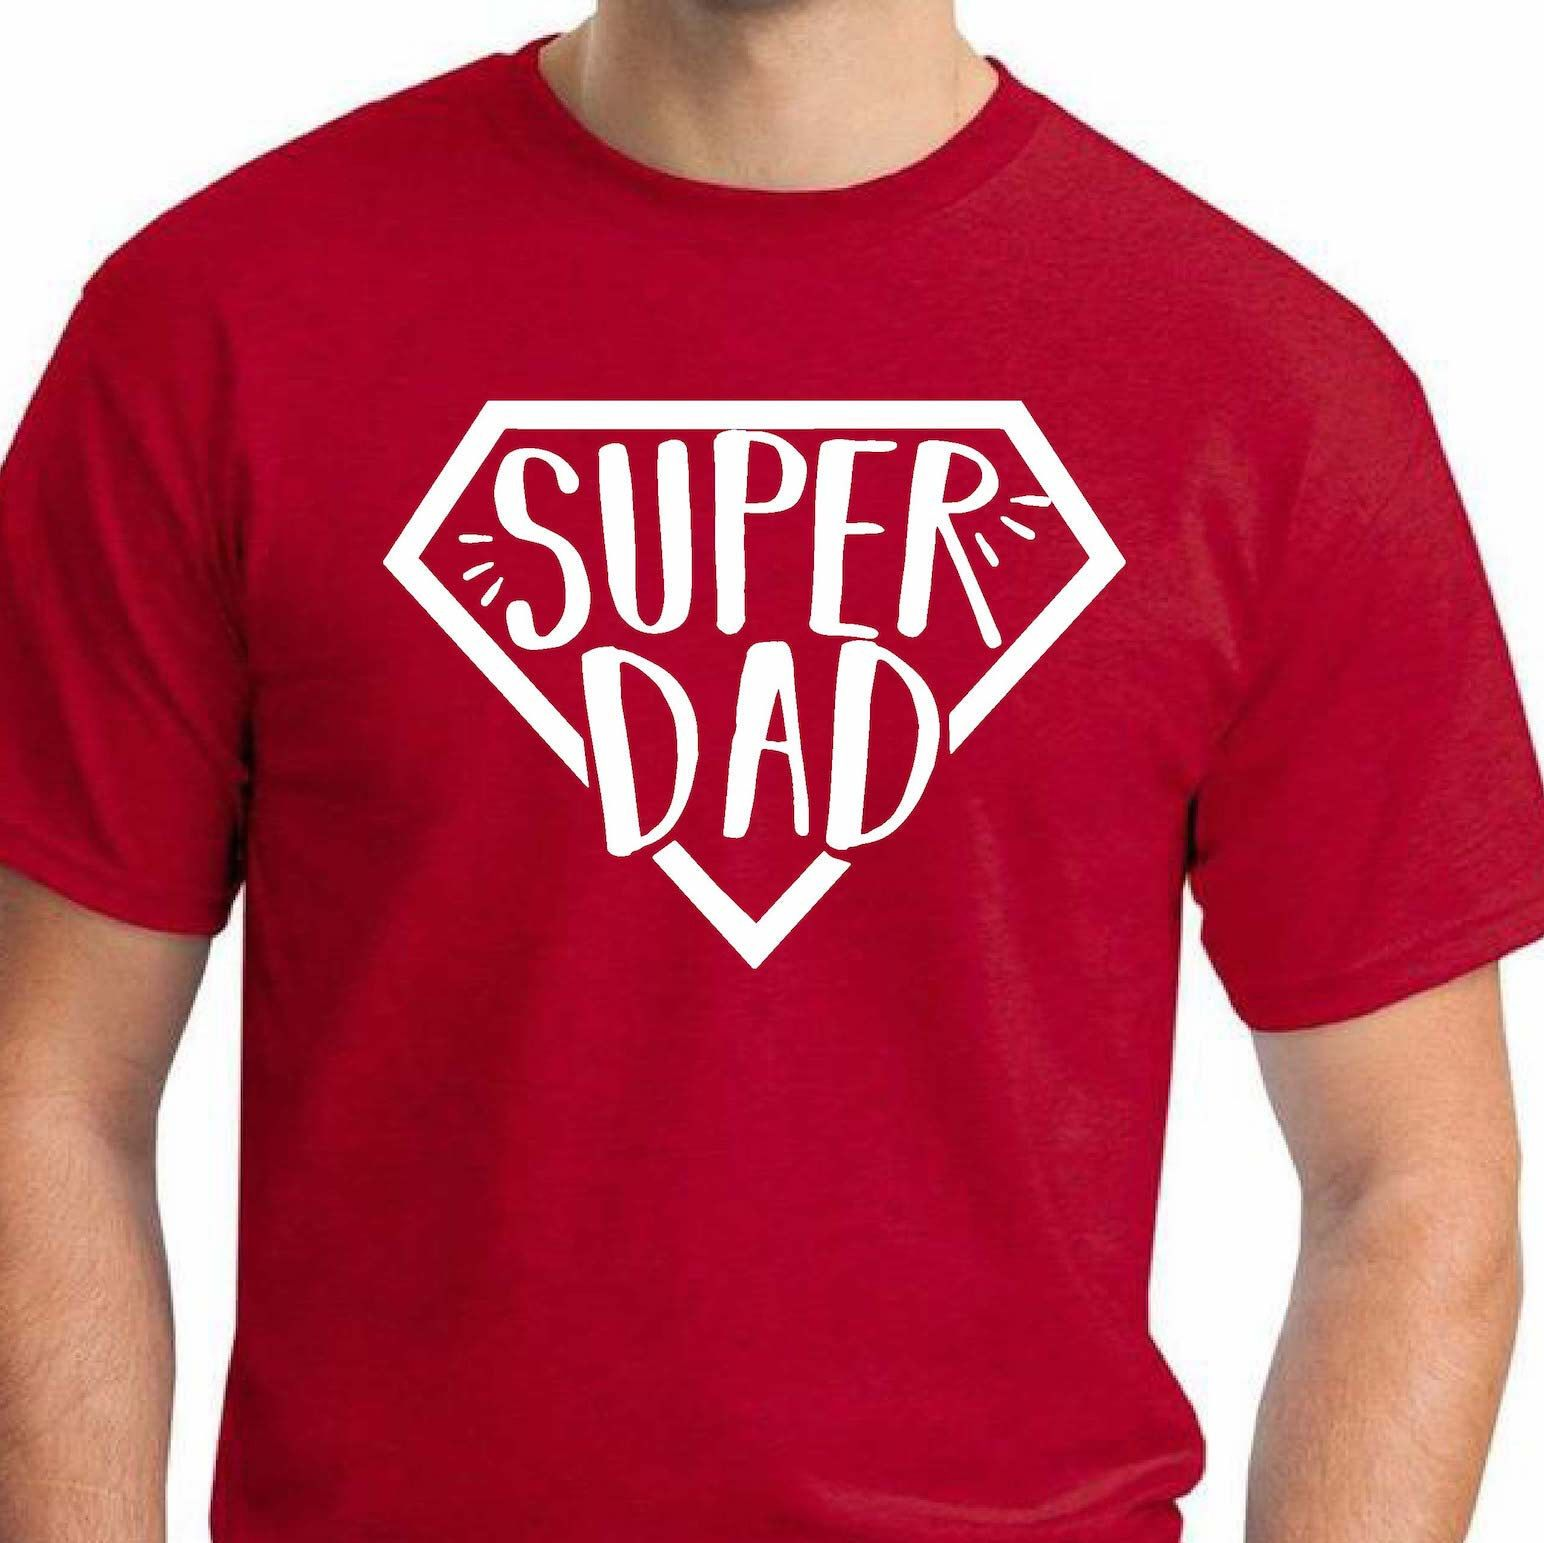 682b41bb Fathers Day Super Dad T-Shirt|Fathers Day Gift|Superhero T-shirt ...